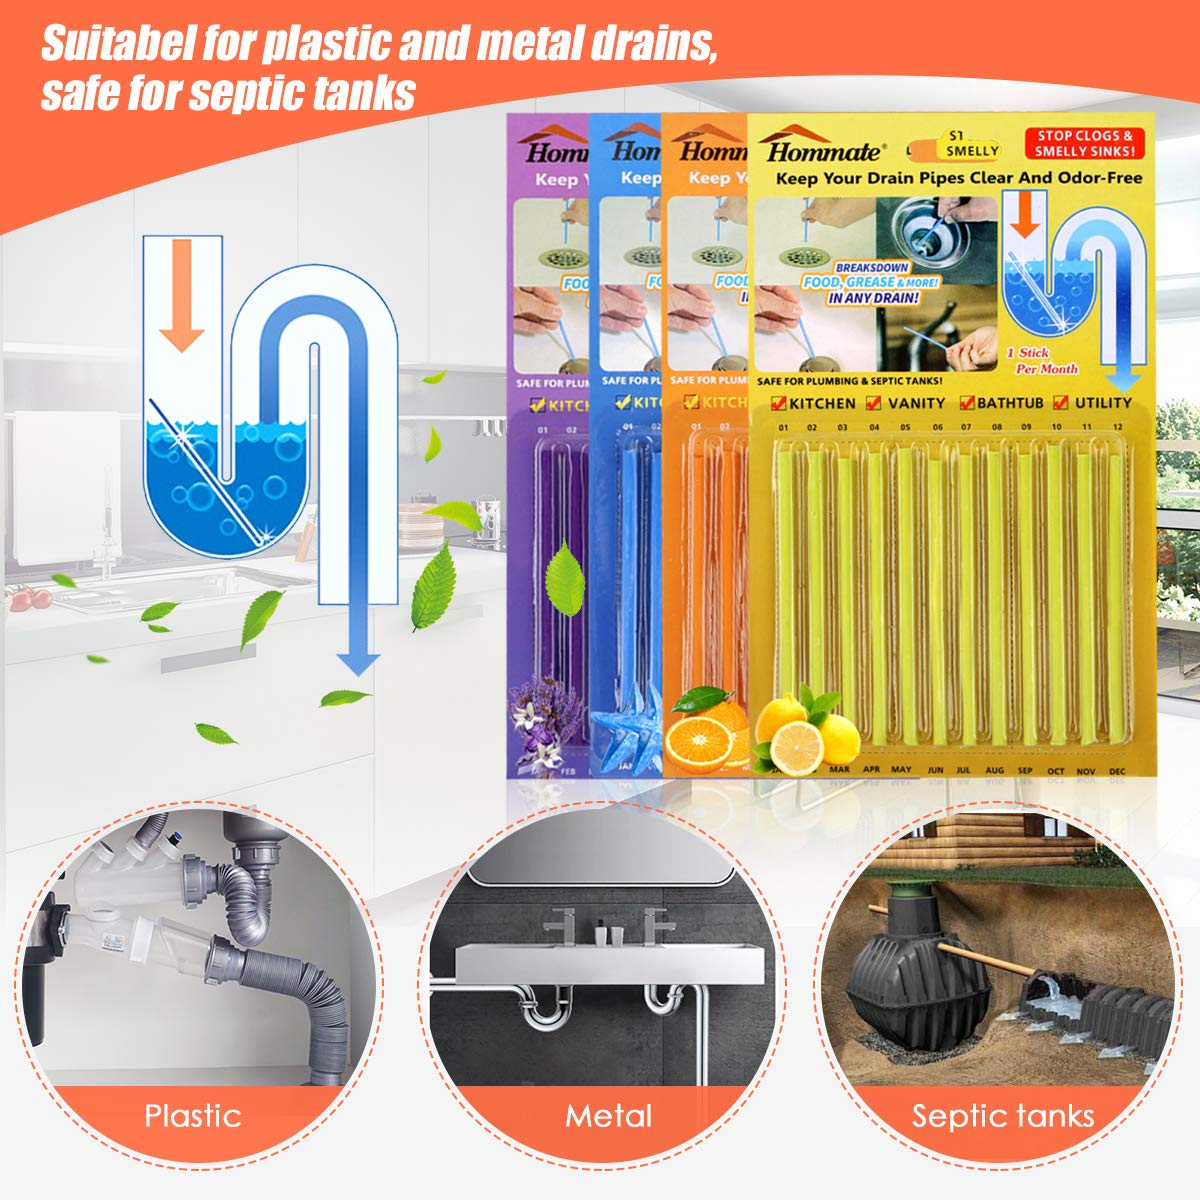 Drain Sticks Drain Stix Drain Cleaner & Deodorizer Sticks Drainstix for Clogs Kitchen Bathroom Sinks Unclog Eliminate Odor Septic Tank Safe As Seen On TV Non-Toxic 48pcs 4 Color